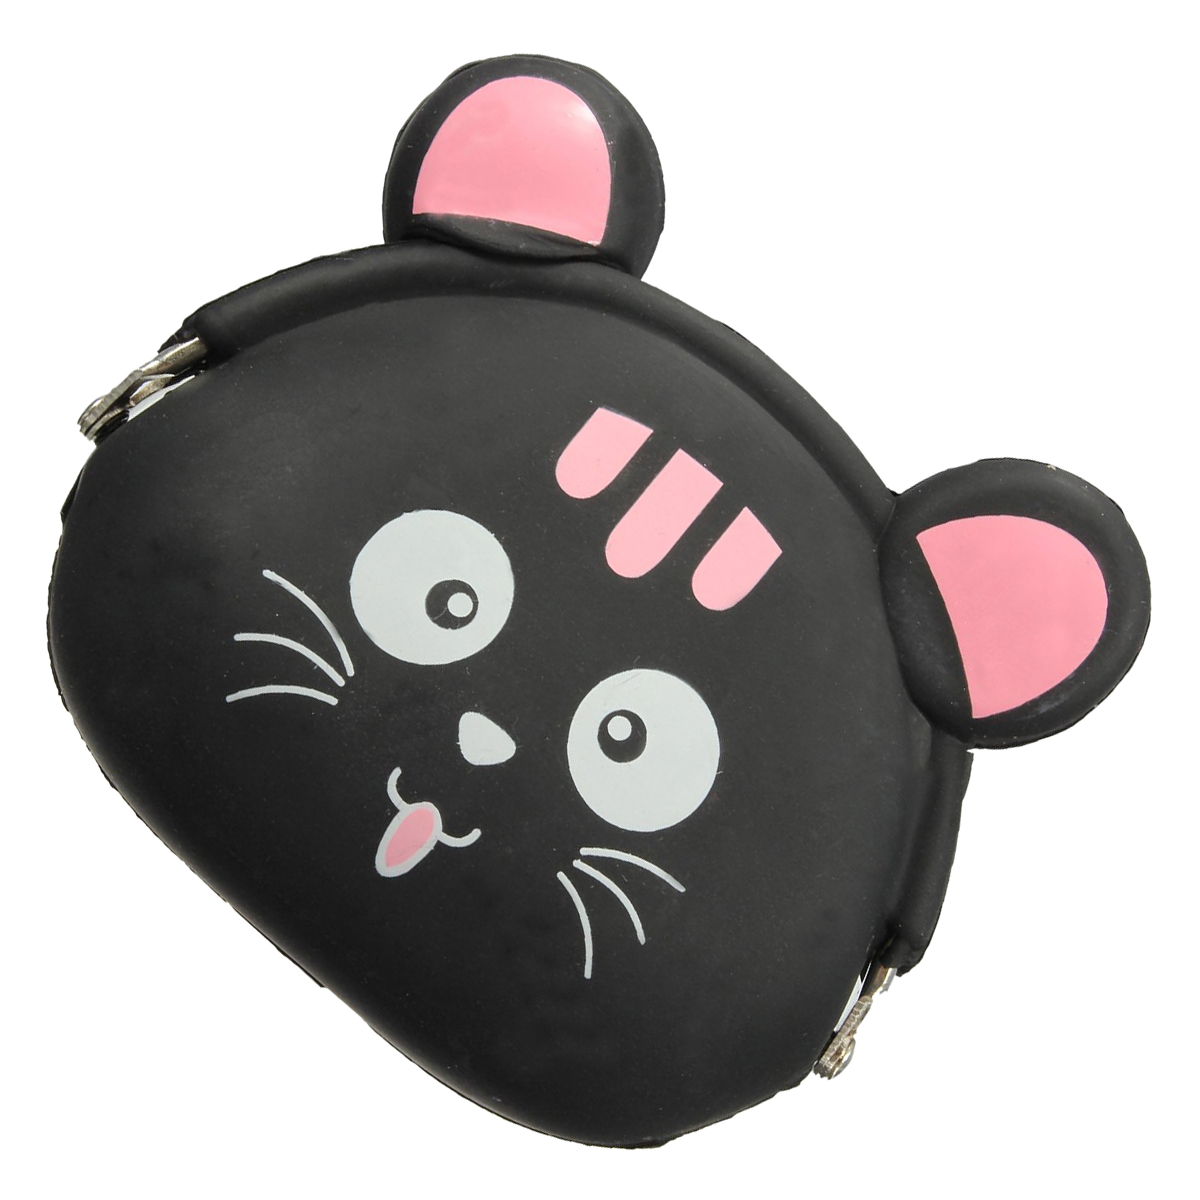 Women Girls Wallet Kawaii Cute Cartoon Animal Silicone Jelly Coin Bag Purse Kids Gift Black cat lps pet shop toys rare black little cat blue eyes animal models patrulla canina action figures kids toys gift cat free shipping